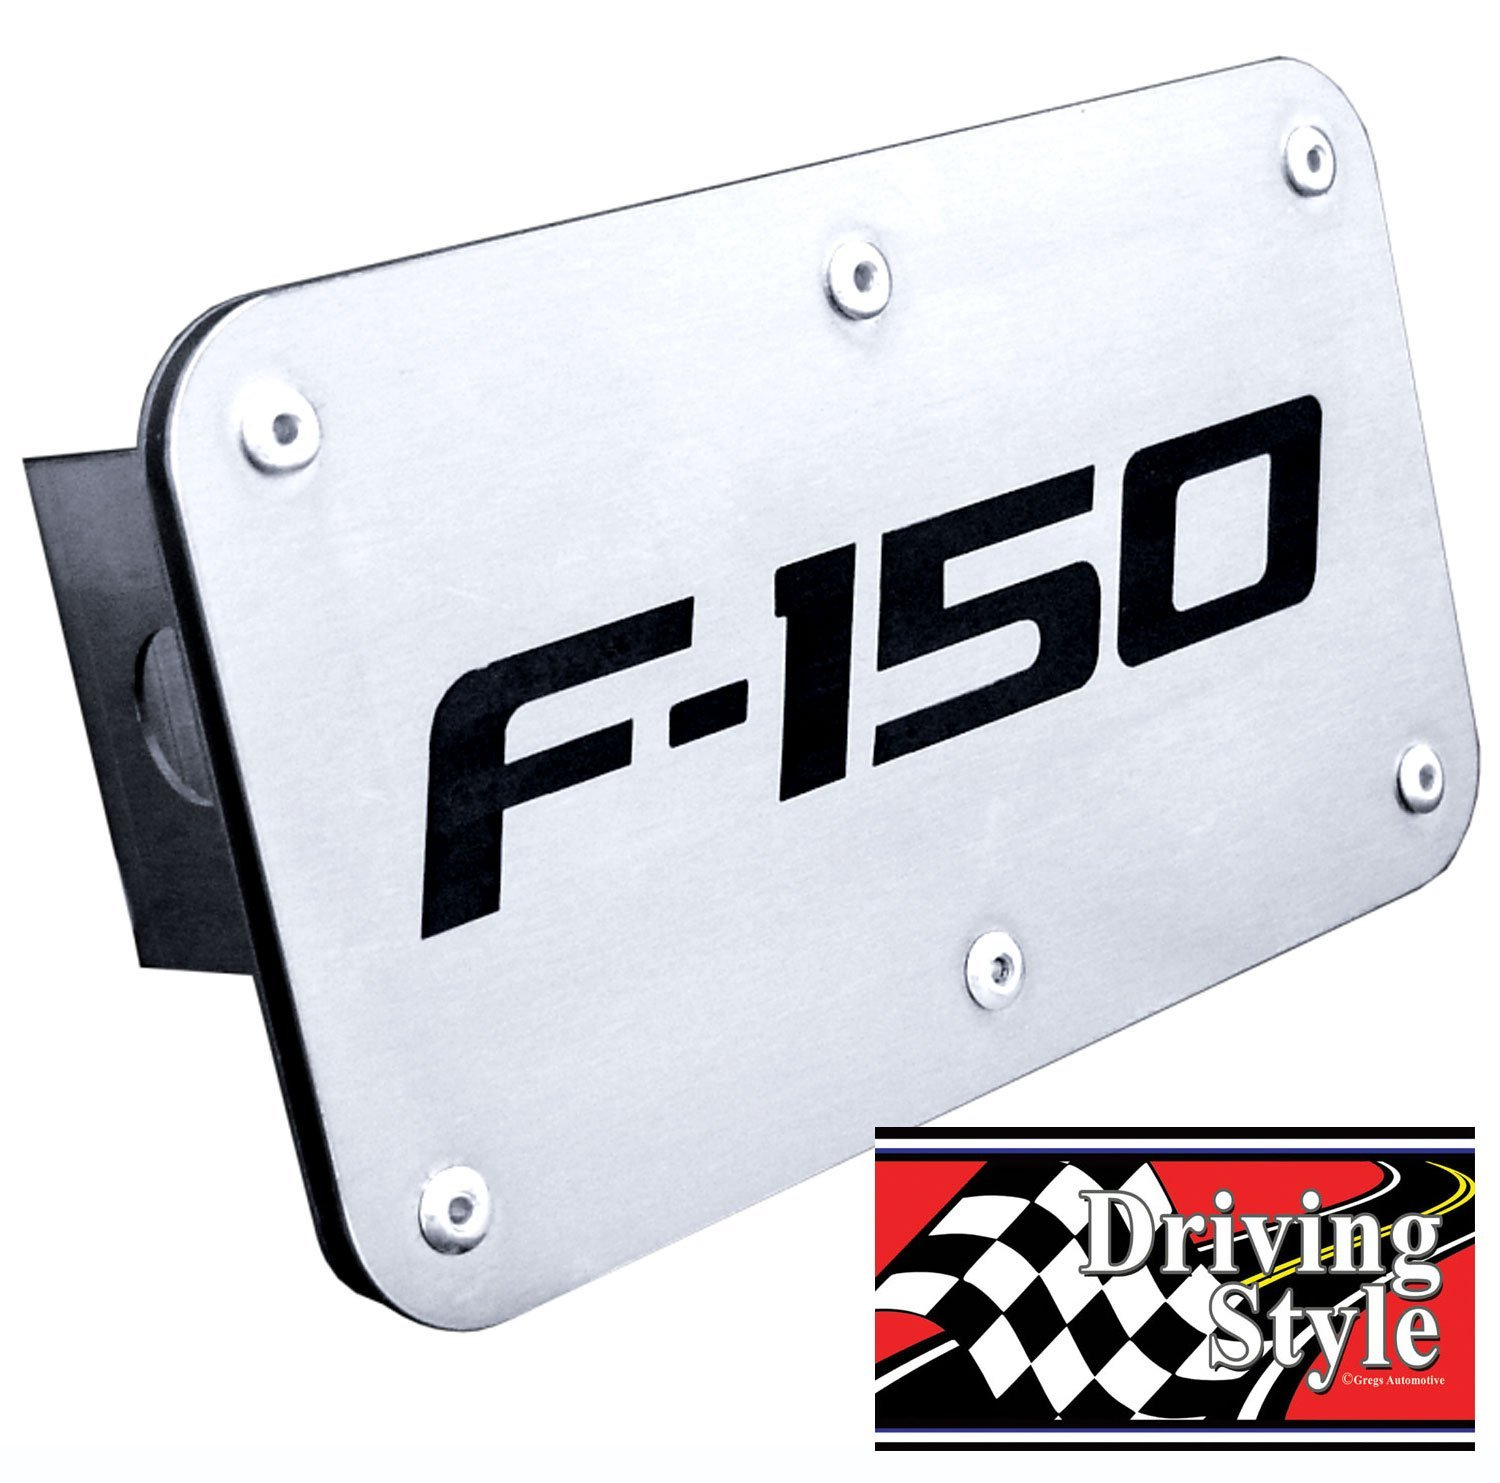 1 Hitch Cover and 1 Driving Style Decal Automotive Gold Gregs Automotive Ford F-150 Hitch Cover Bundle Of 2 items